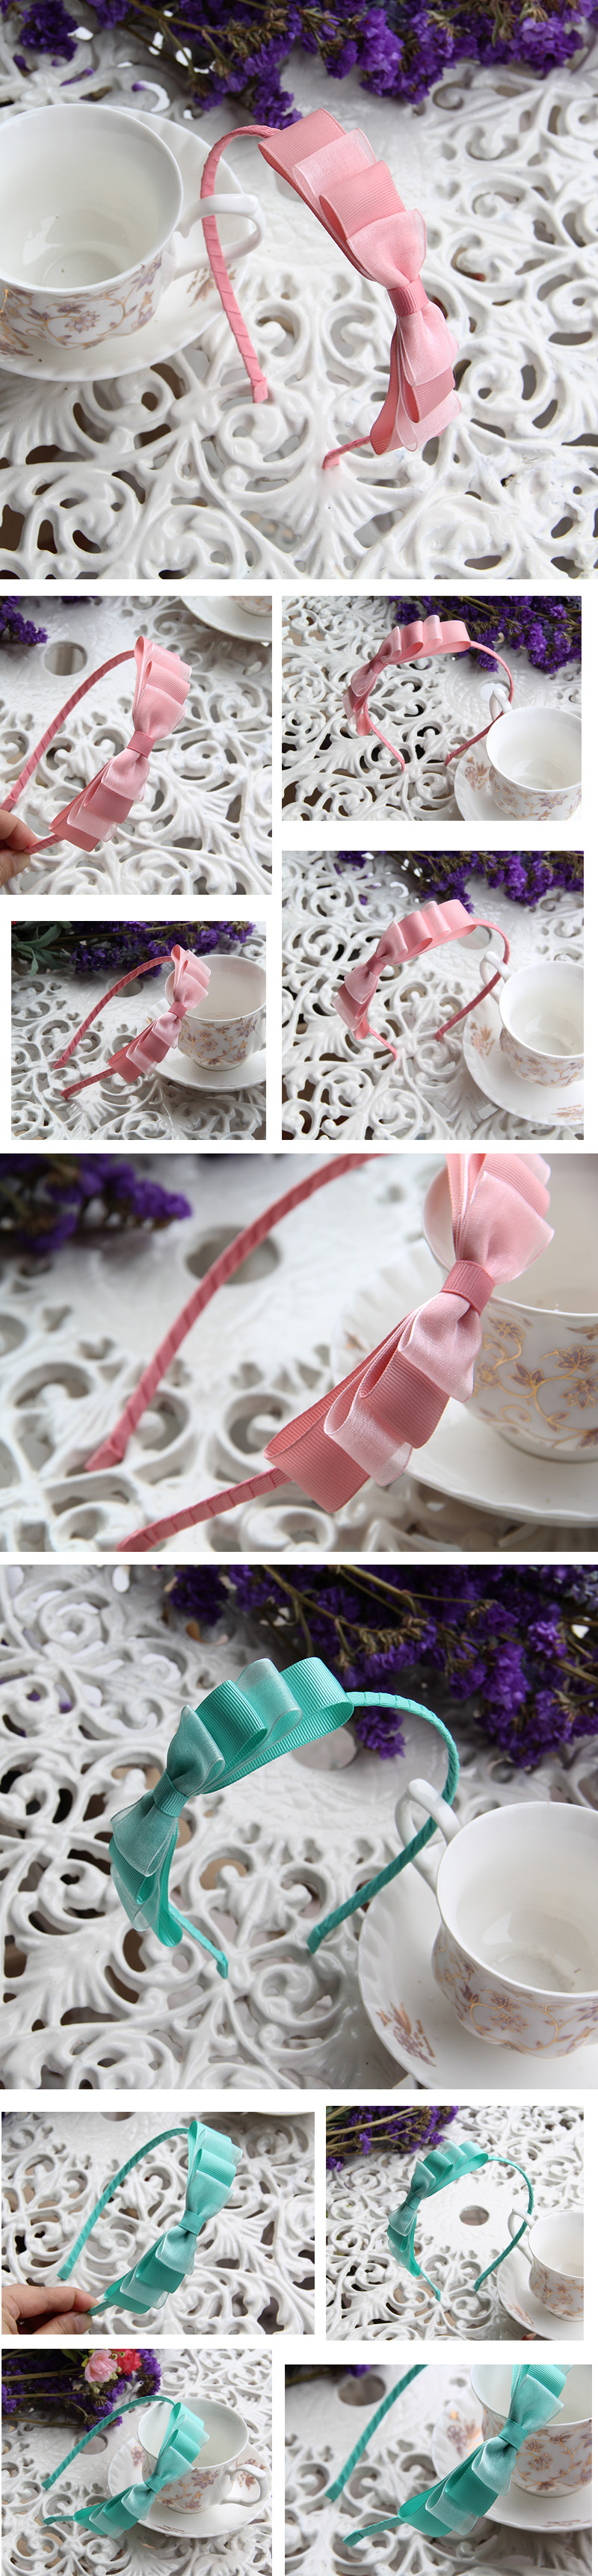 The Bow Head Hoop Hair Card Hoop Multi-layer Temperament Bride Headdress Party Birthday Christmas Gifts